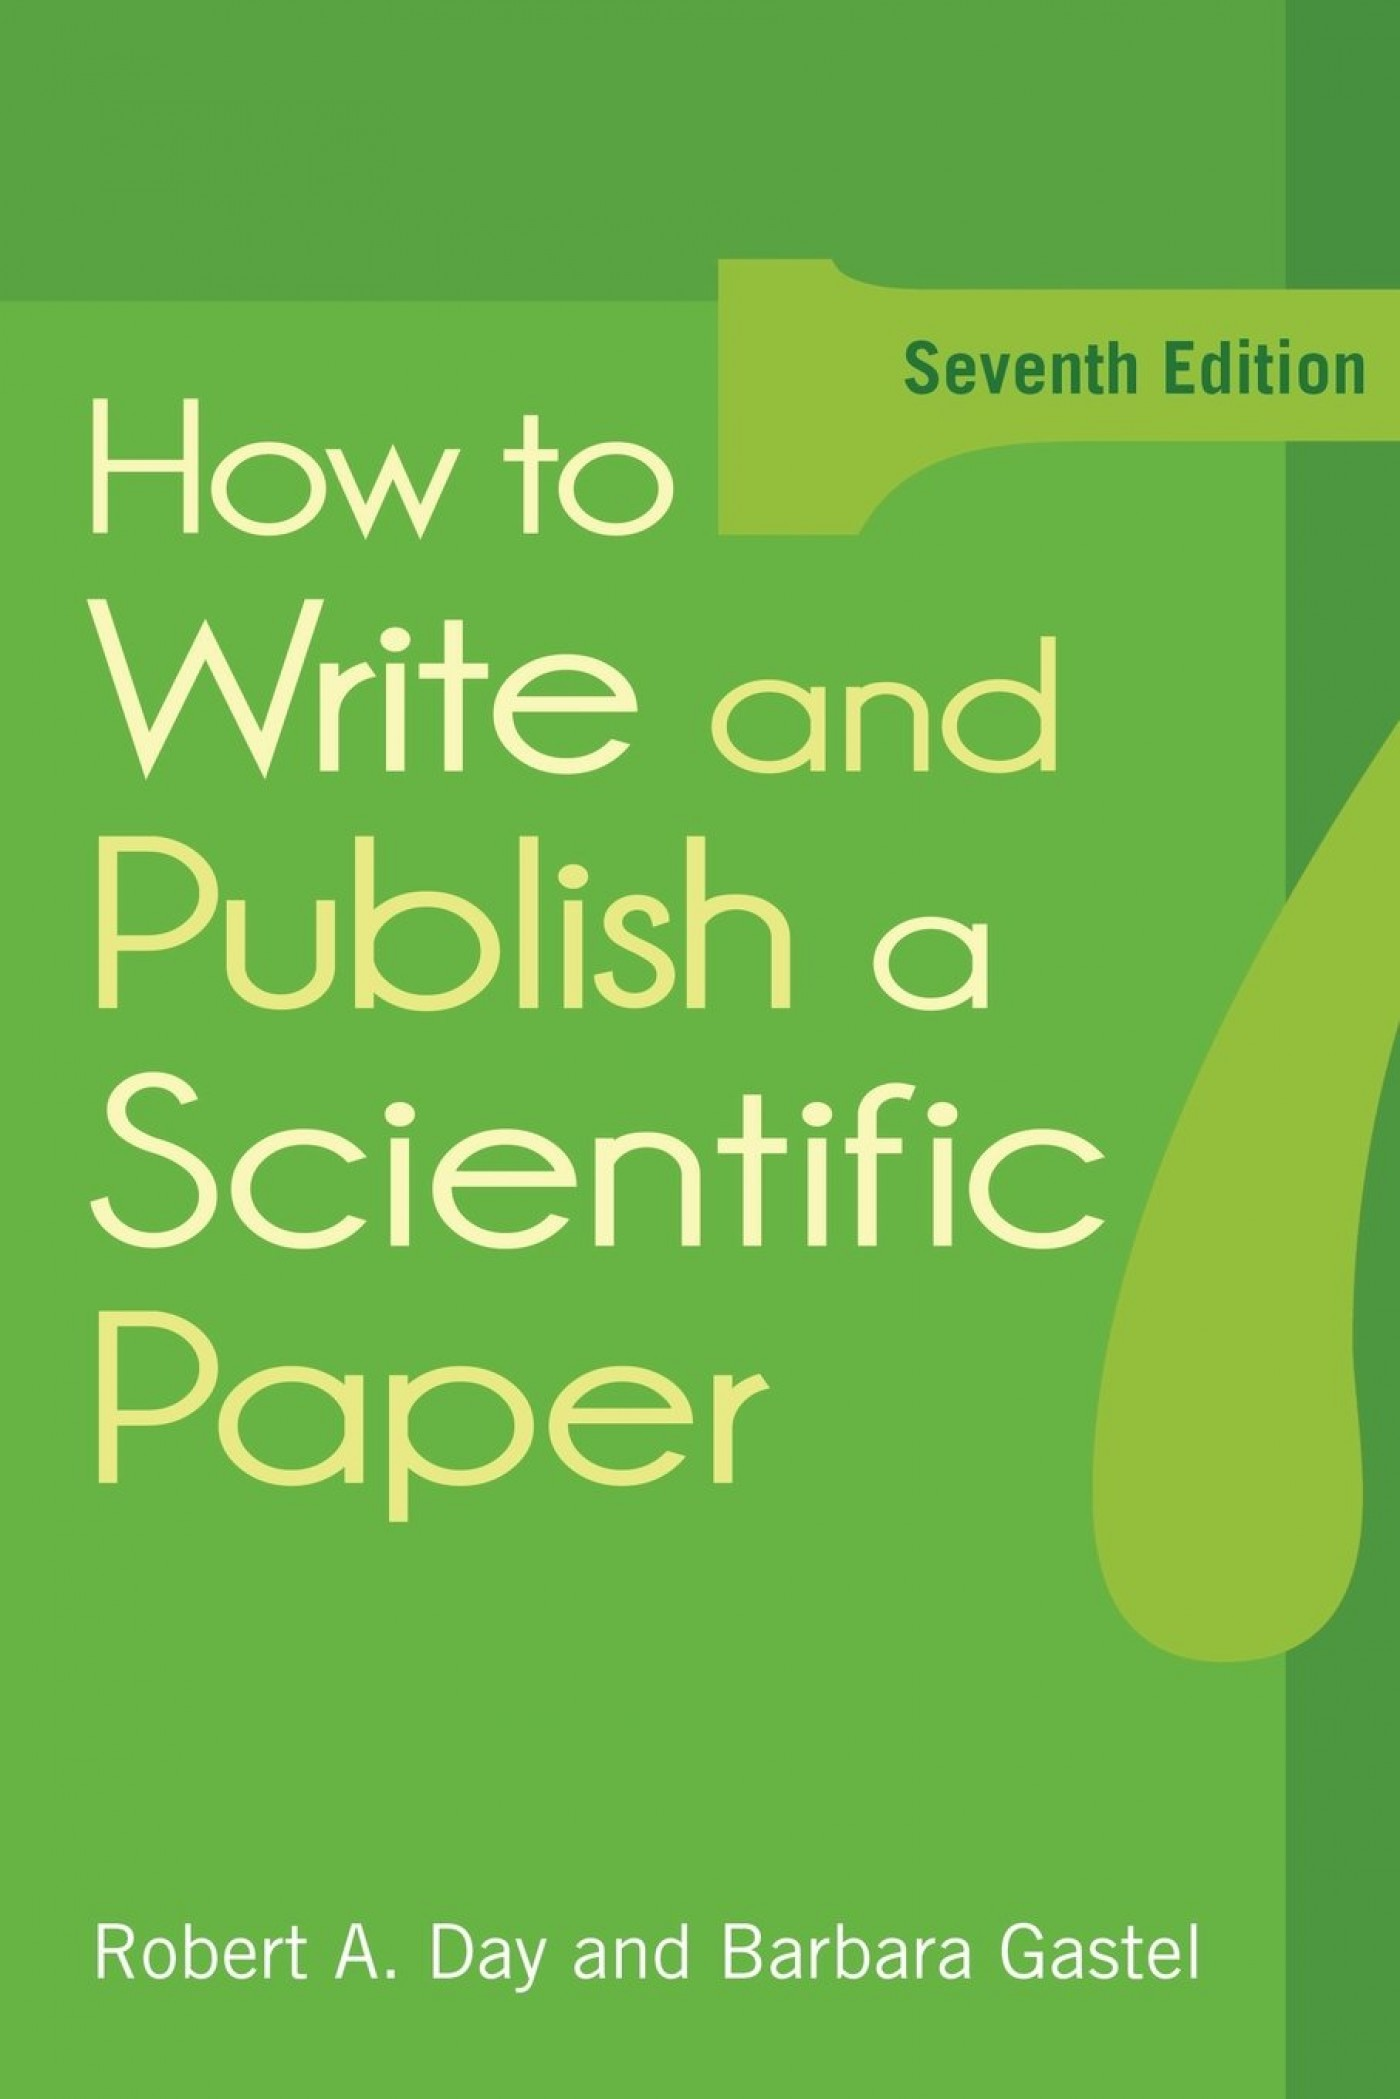 002 Research Paper How To Write Scientific Pdf Writing Sensational And Publish A Computer Science 1400